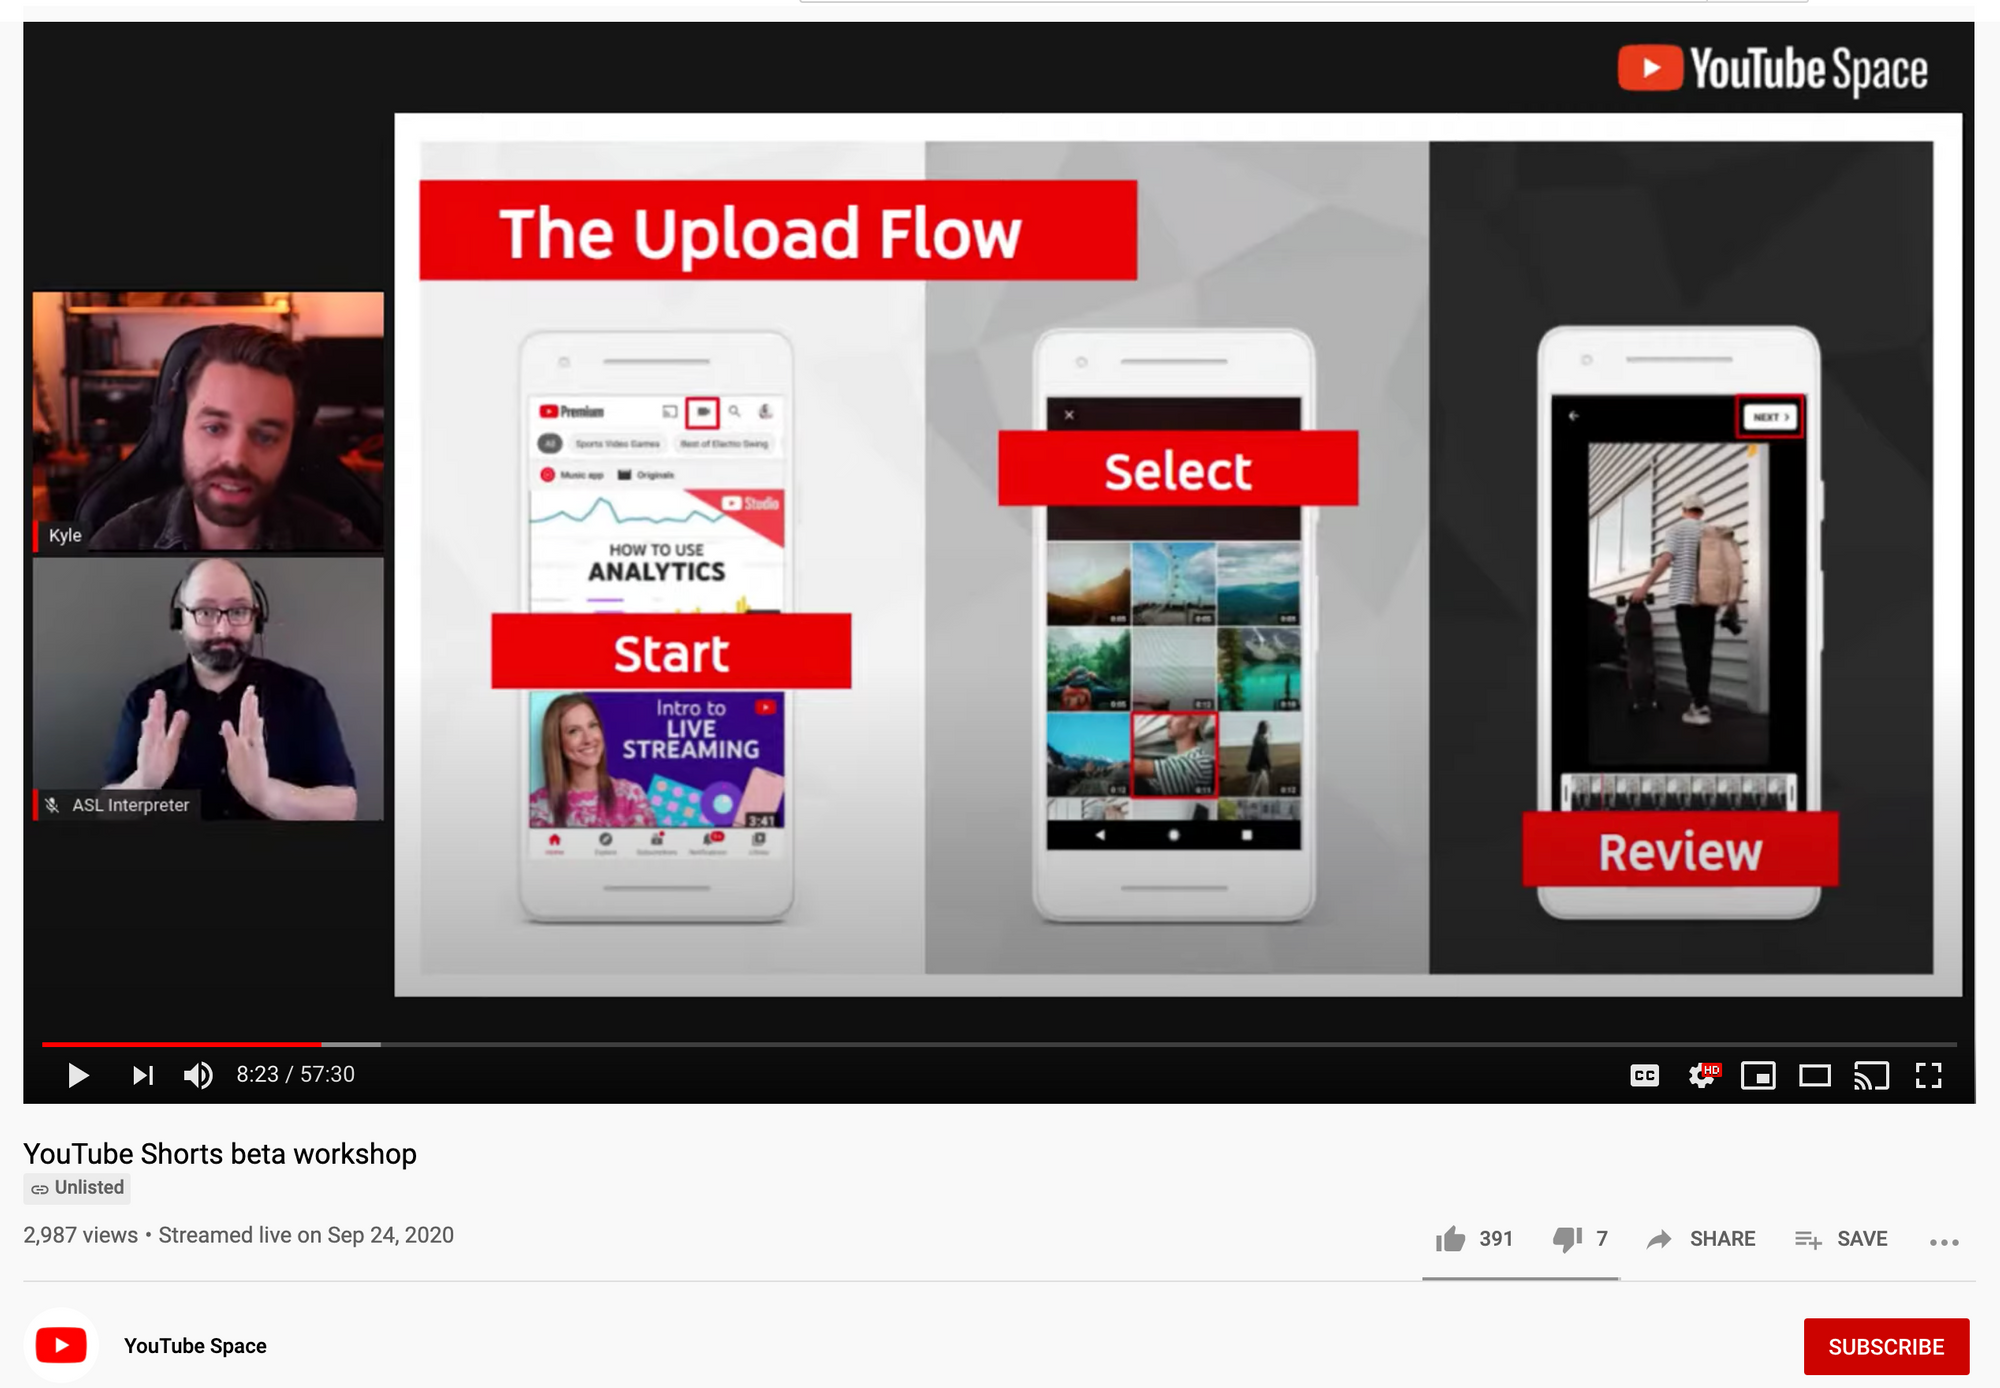 A screenshot of YouTube's own testing video for YouTube shorts.